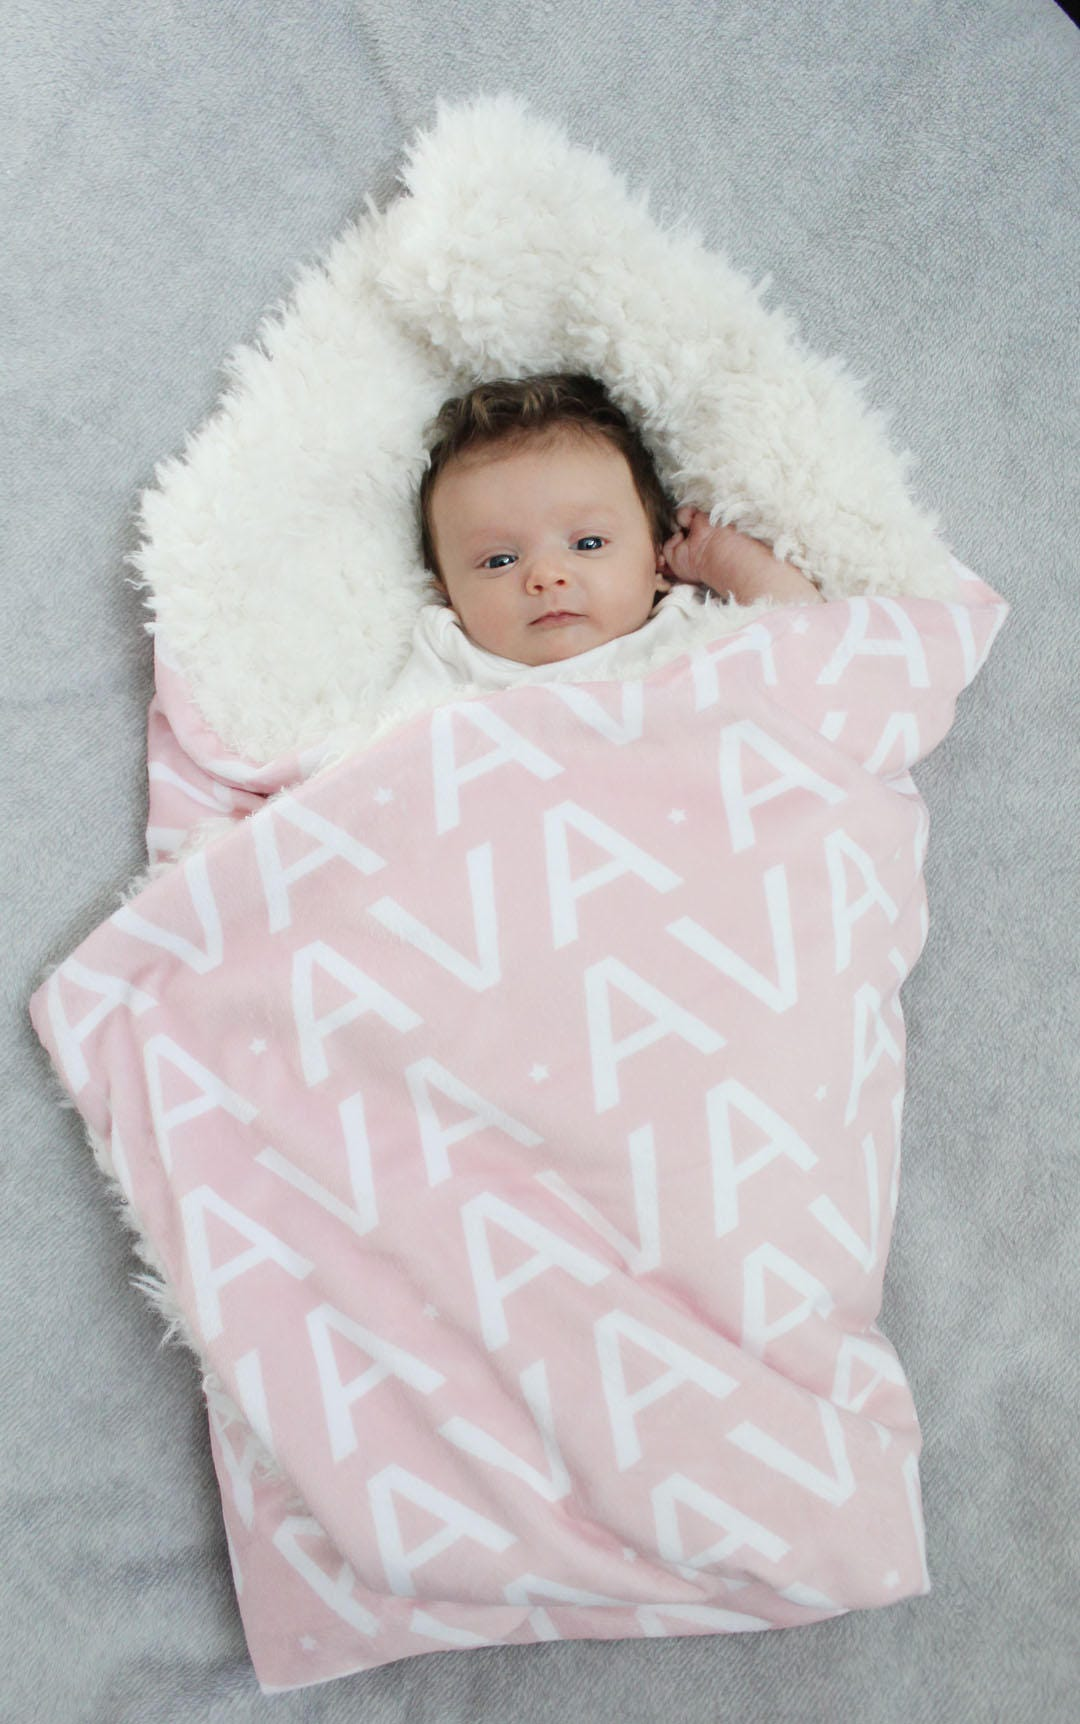 Personalized baby blanket faux fur minky lovey name blanket baby personalized baby blanket faux fur minky lovey name blanket baby gift cloud blanket llama grey newborn gift plush photo prop toddler child negle Gallery